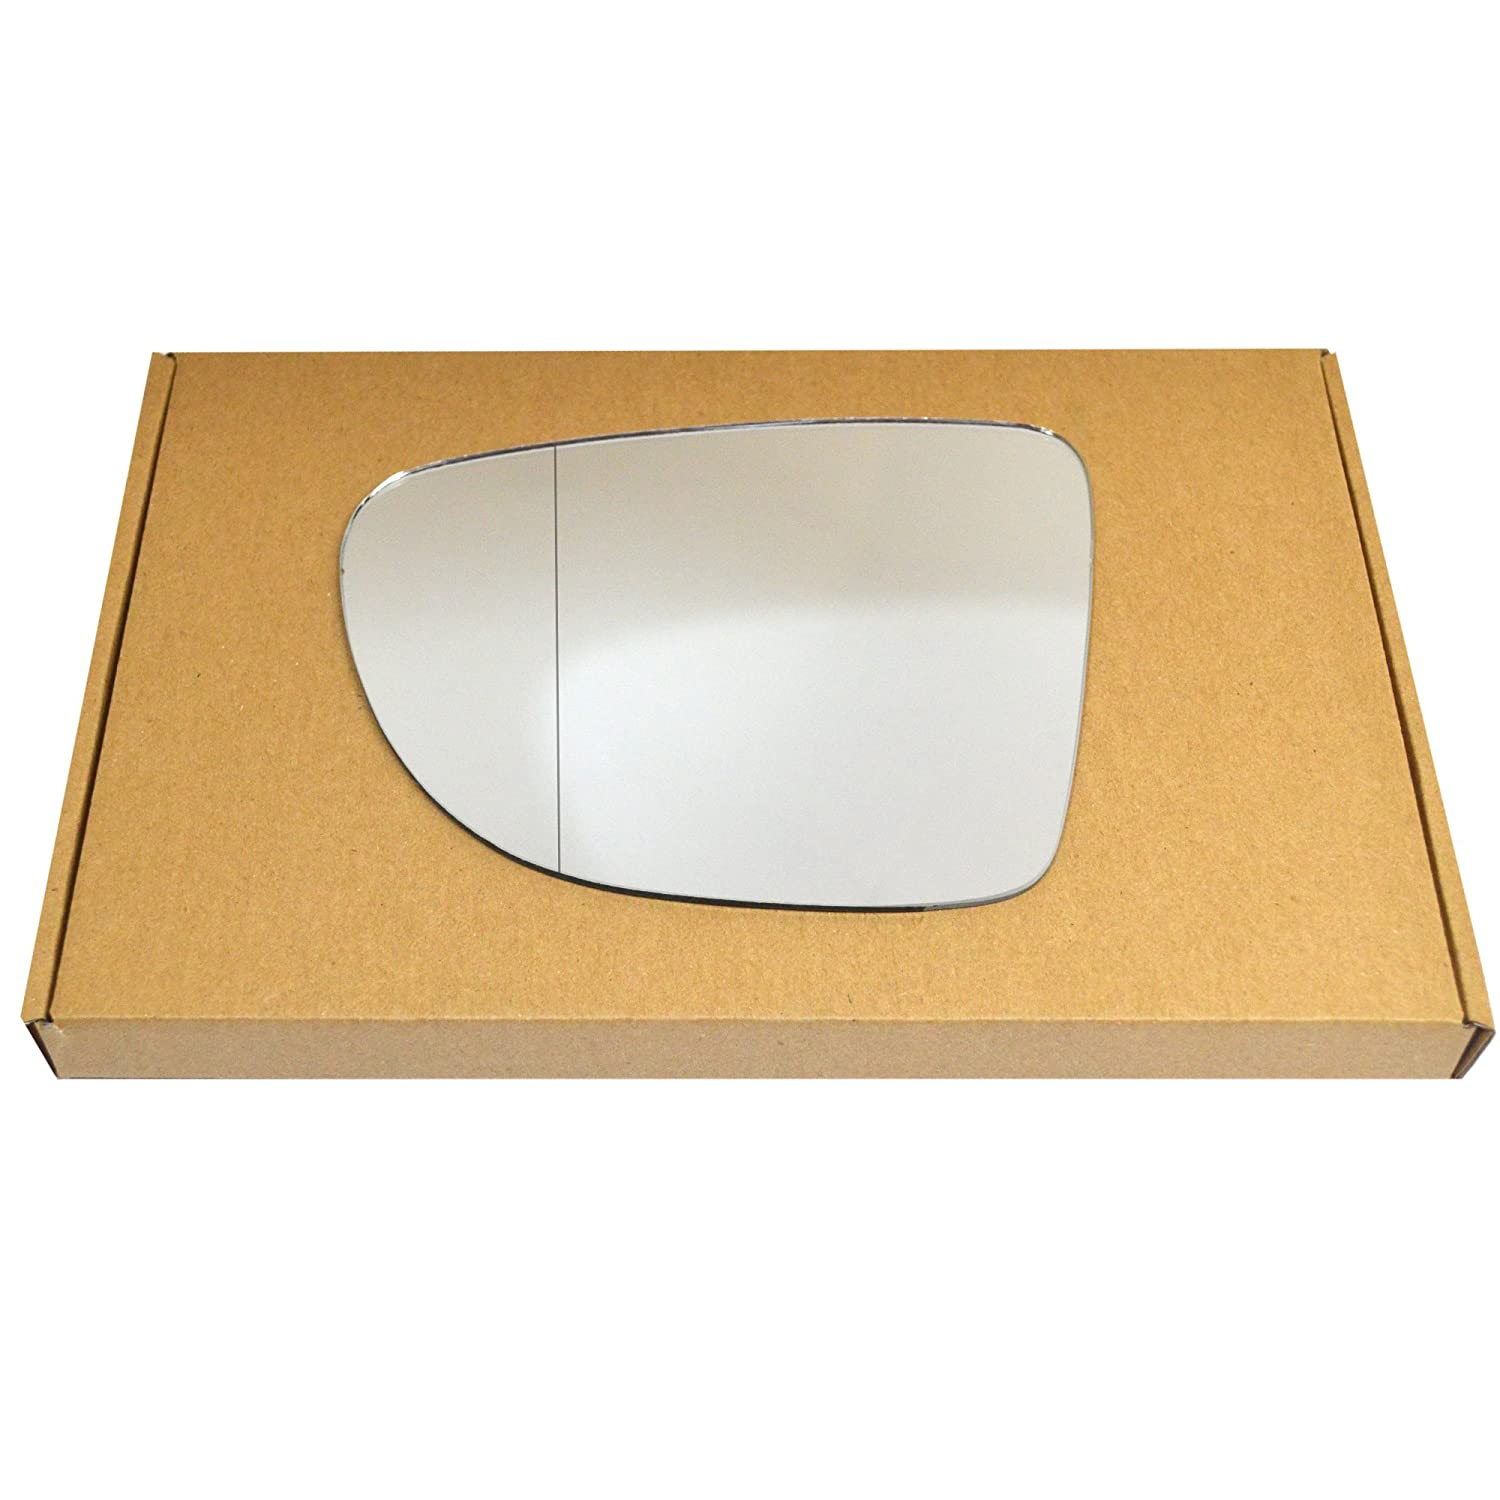 Wide Angle Left passegner side Silver Wing mirror glass # ReCli//an0-2015374//590